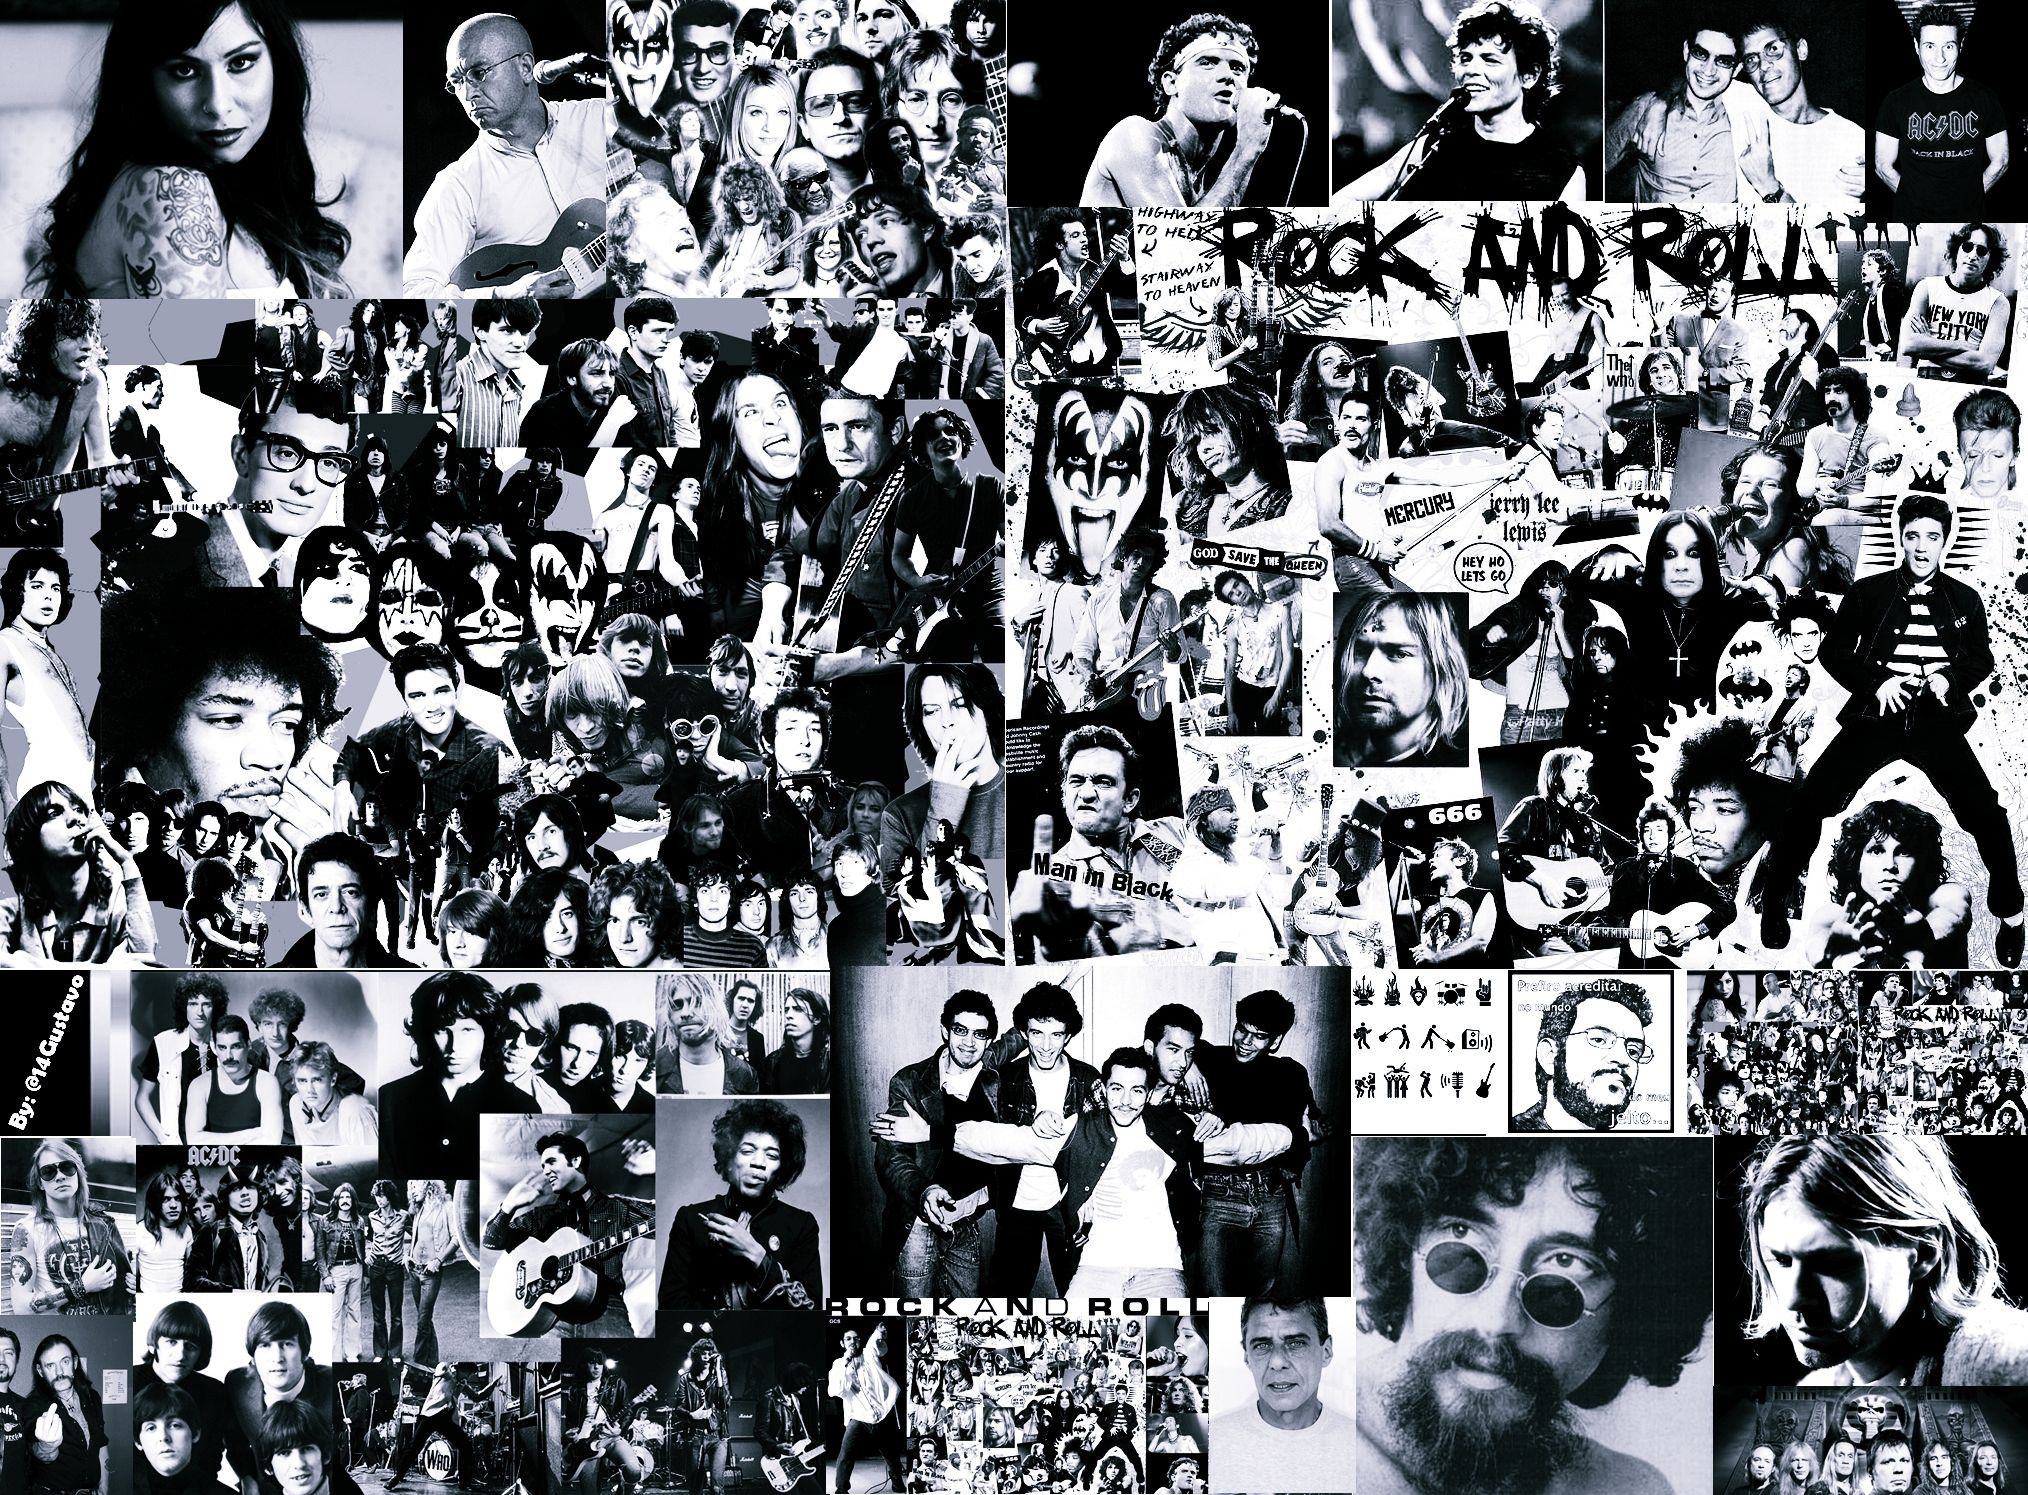 Rock And Roll Wallpaper Forwallpaper Com Music Wallpaper Rock And Roll American Wallpaper